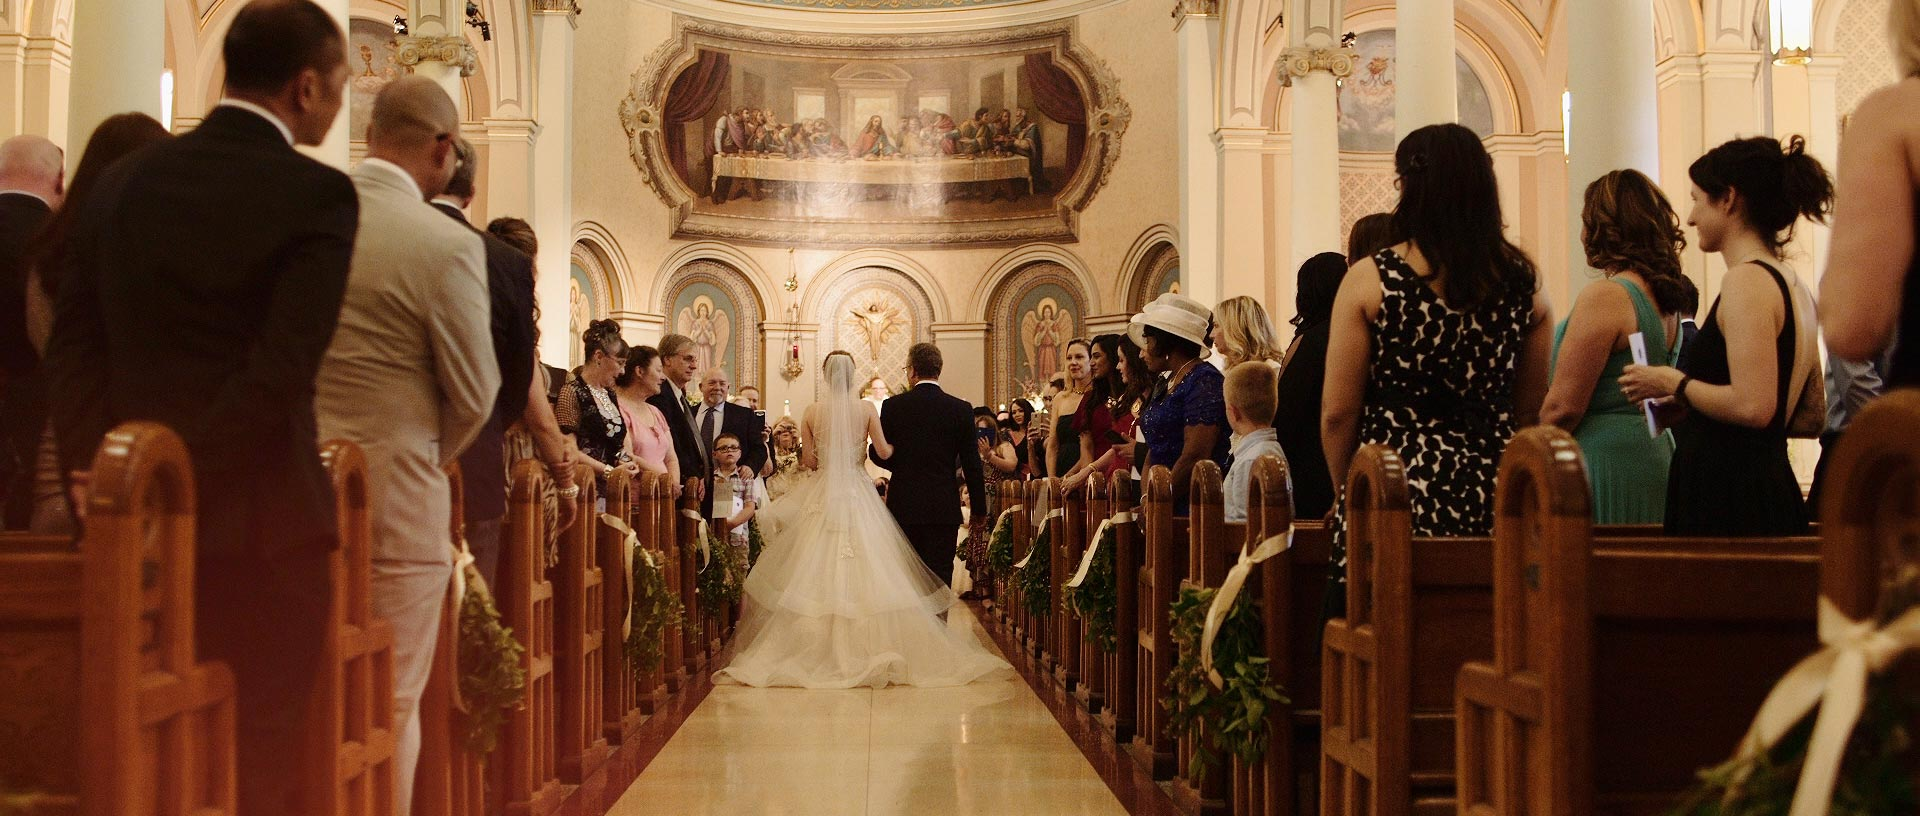 St. Paul's Basilica Wedding